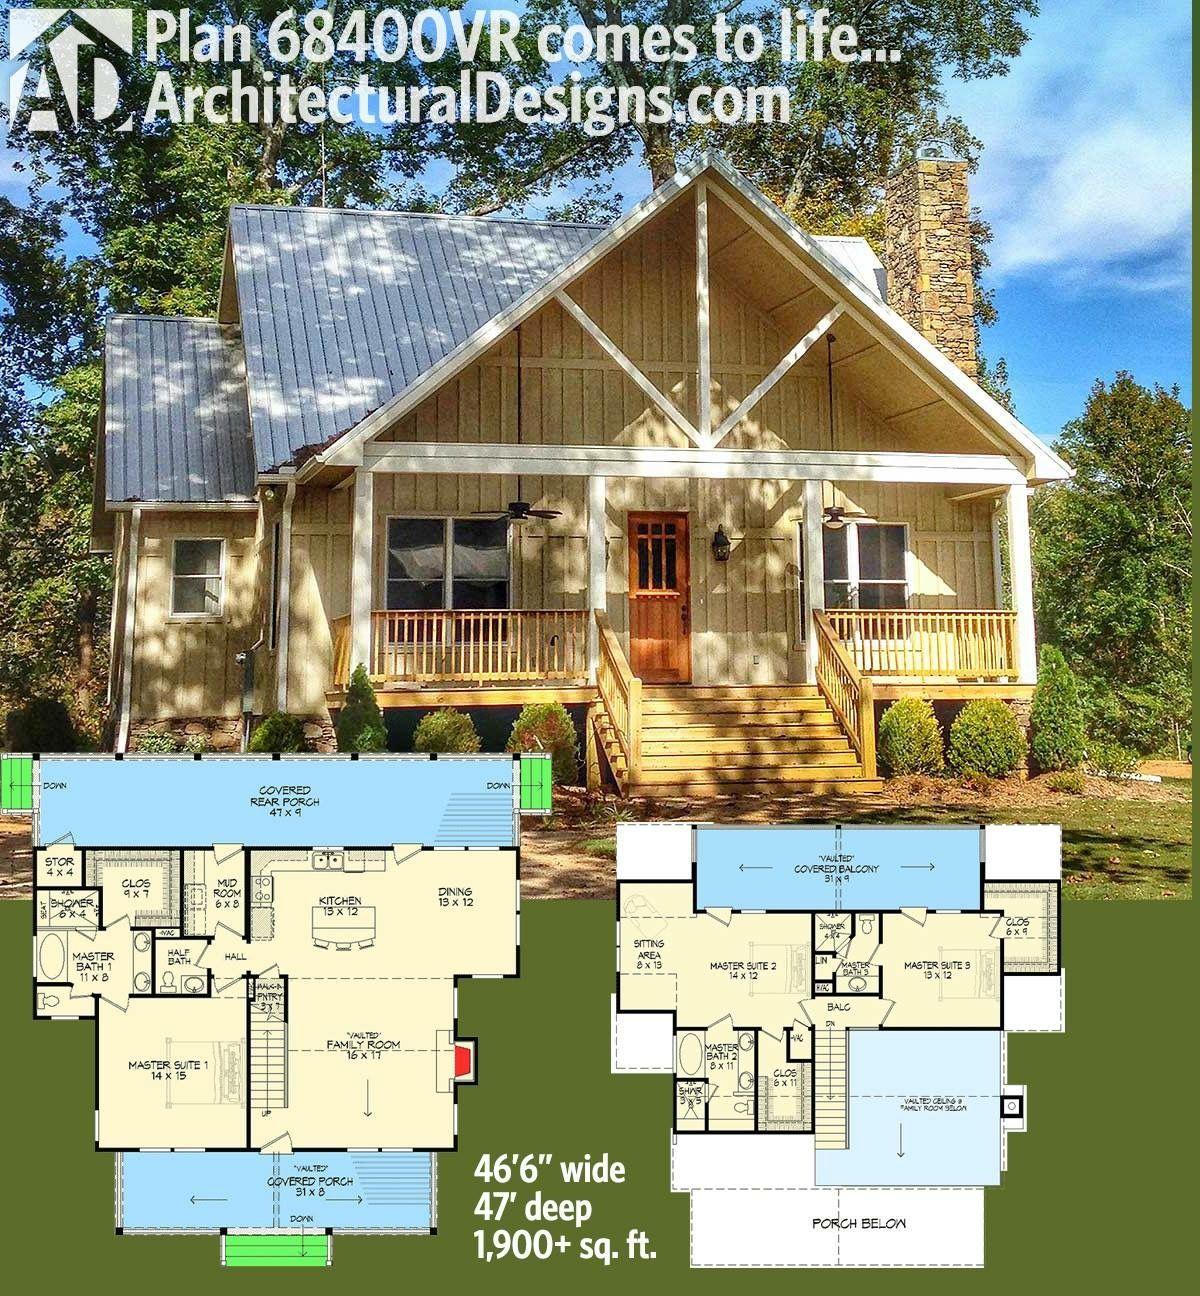 Architectural Designs House Plan 68400VR. A Front Porch And Two In Back    One Off